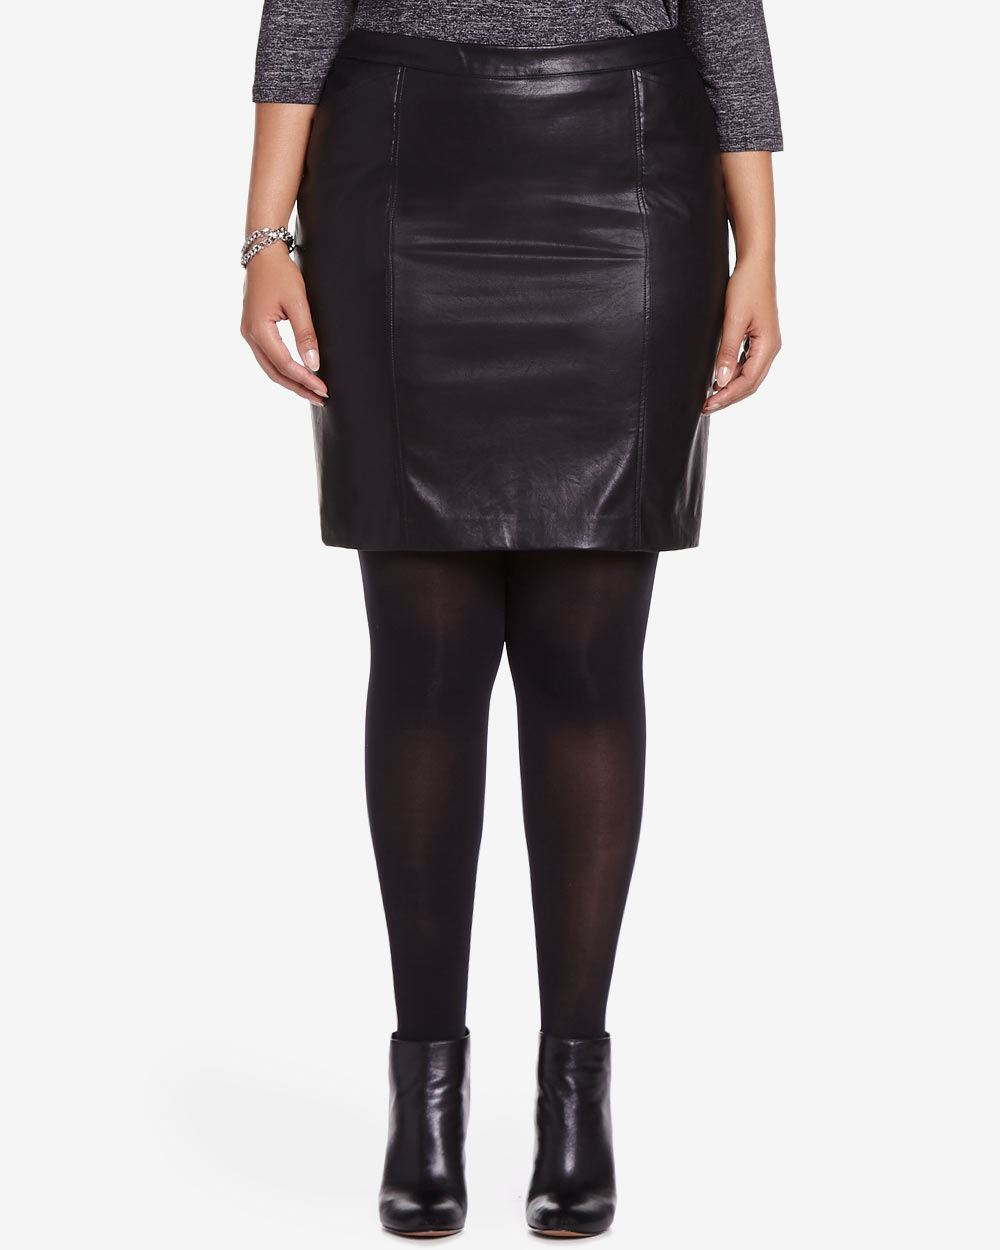 Got your Leather skirt size